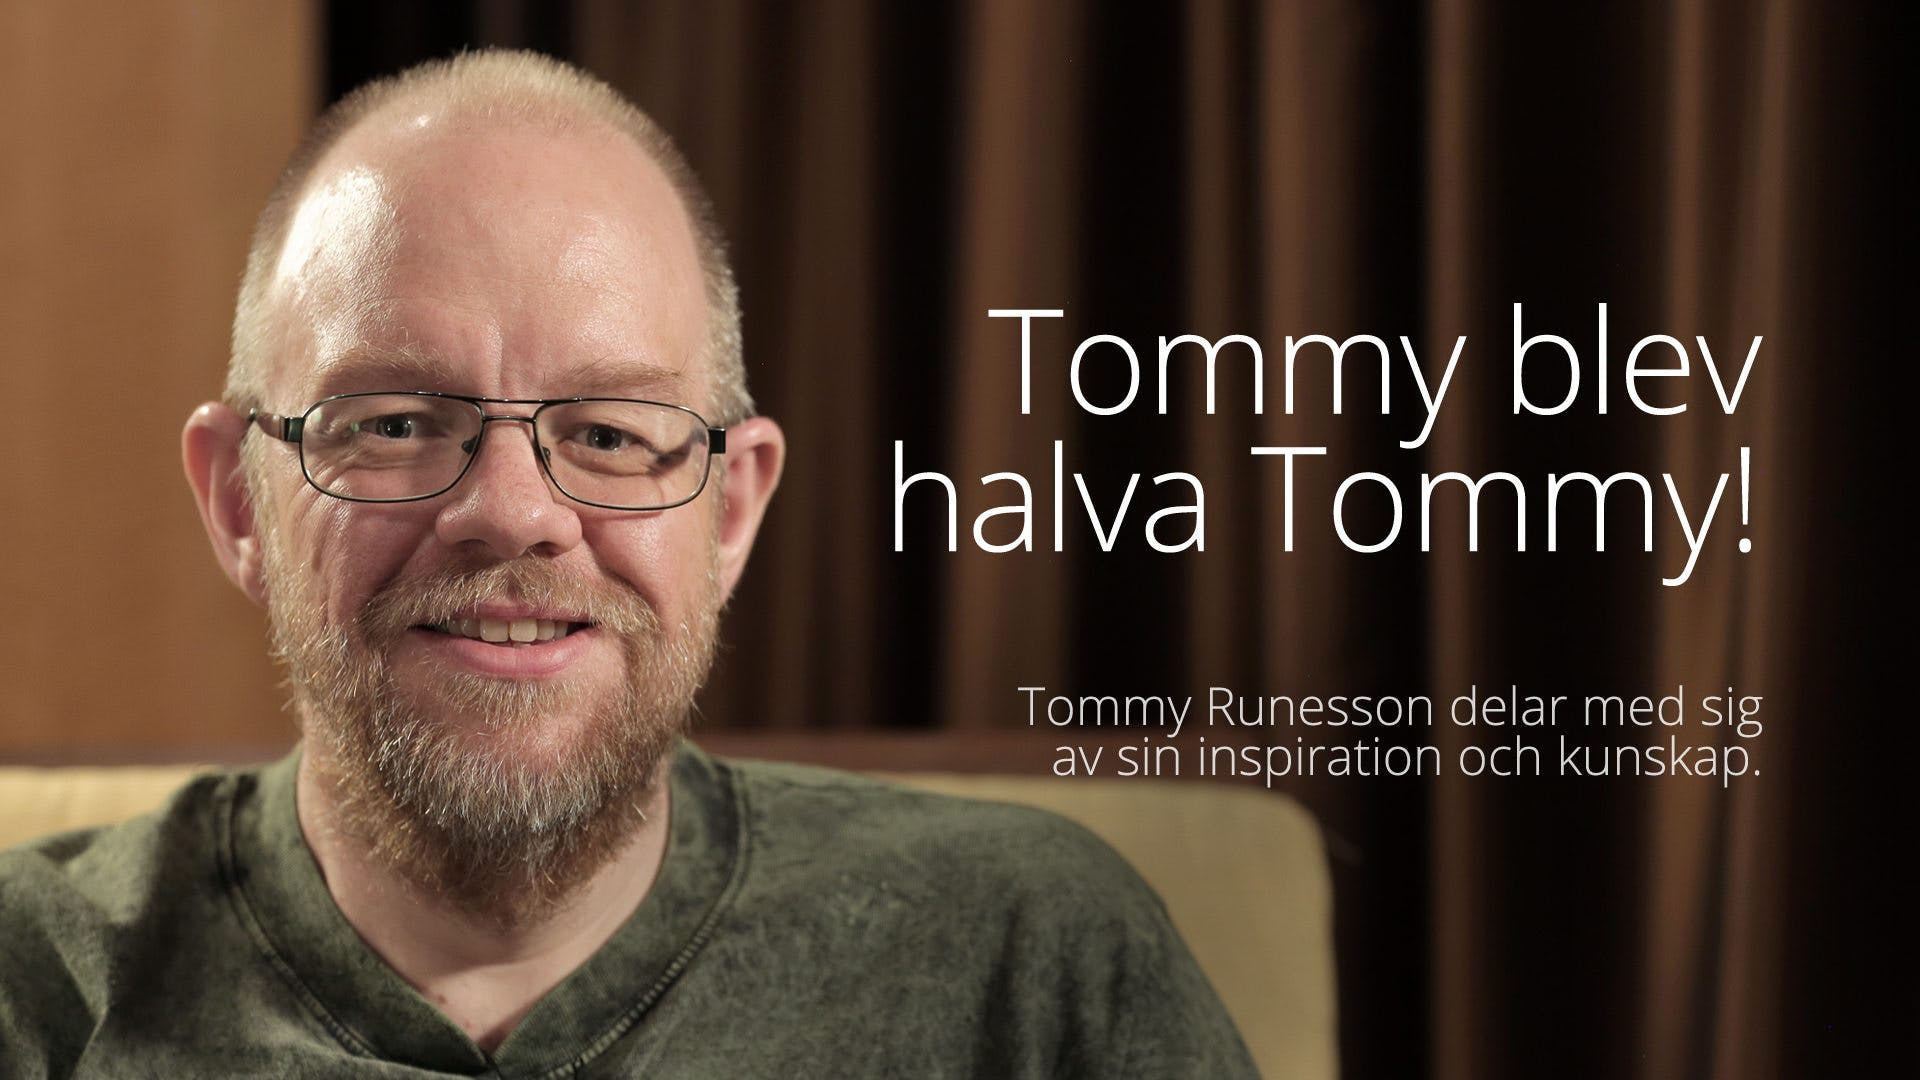 Tommy Runesson - Tommy blev halva Tommy! (LCC 2016)